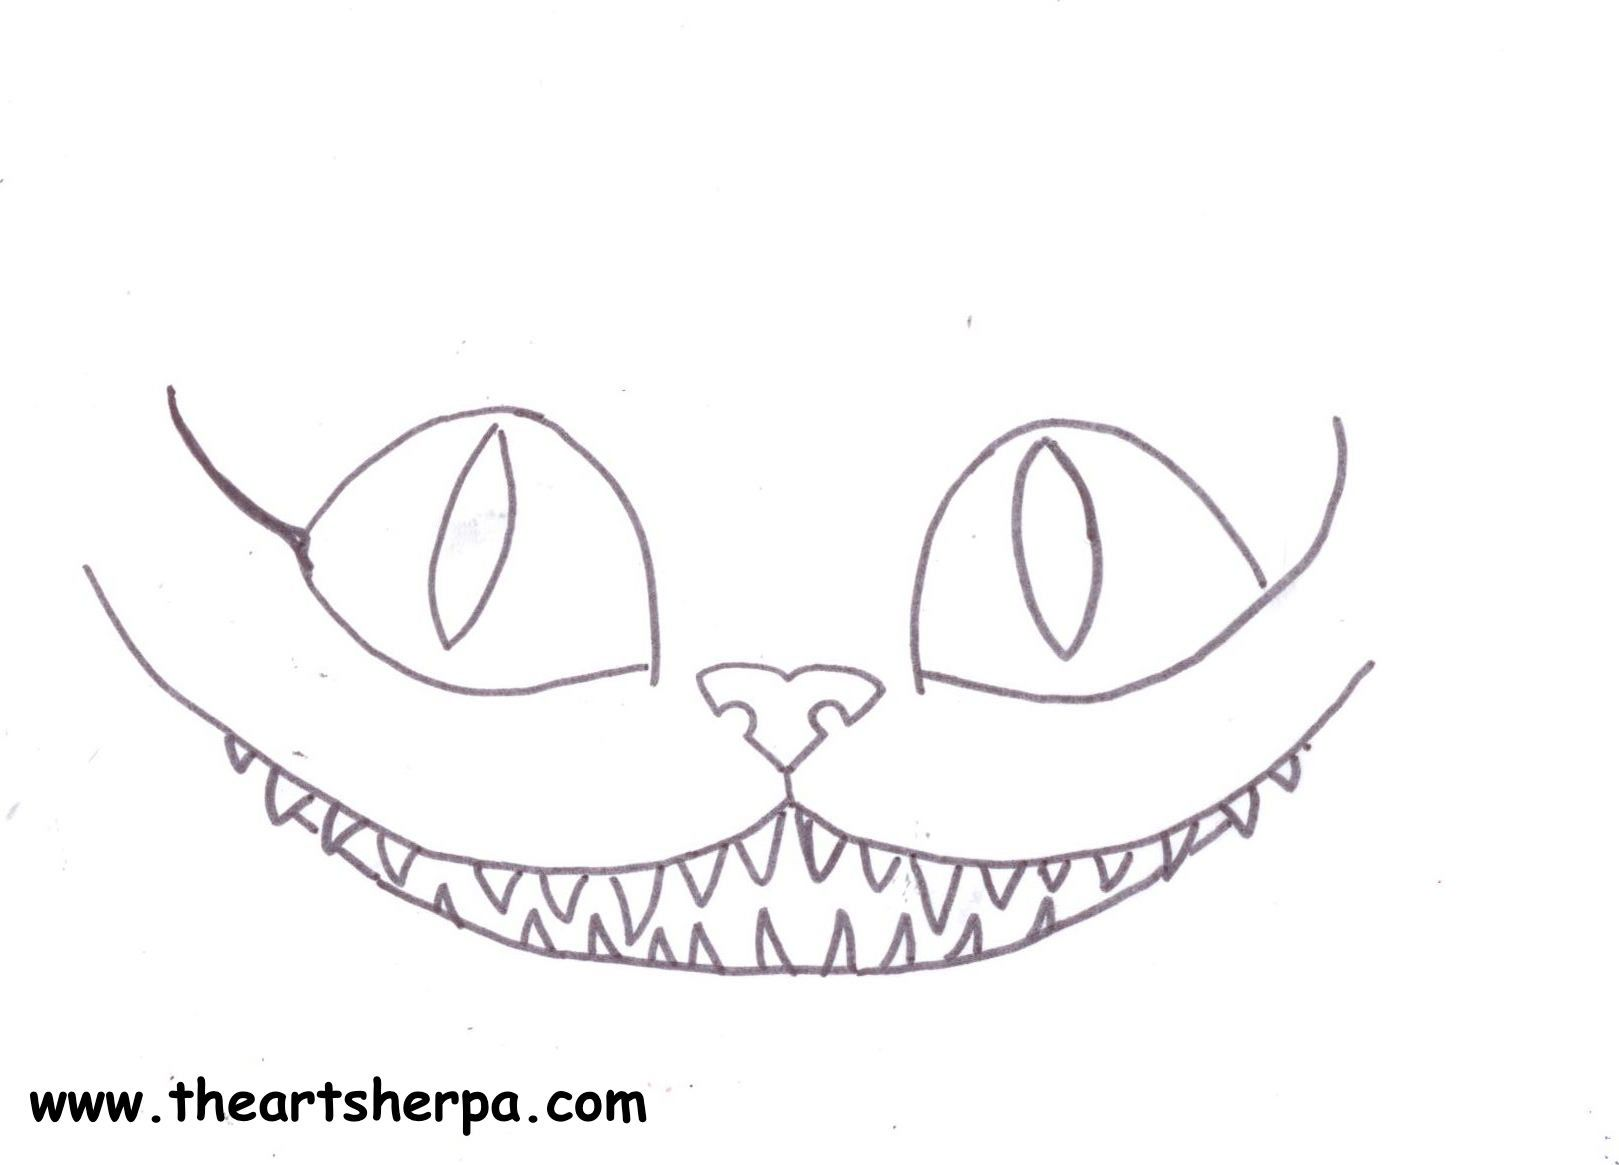 Cheshire Cat Outline